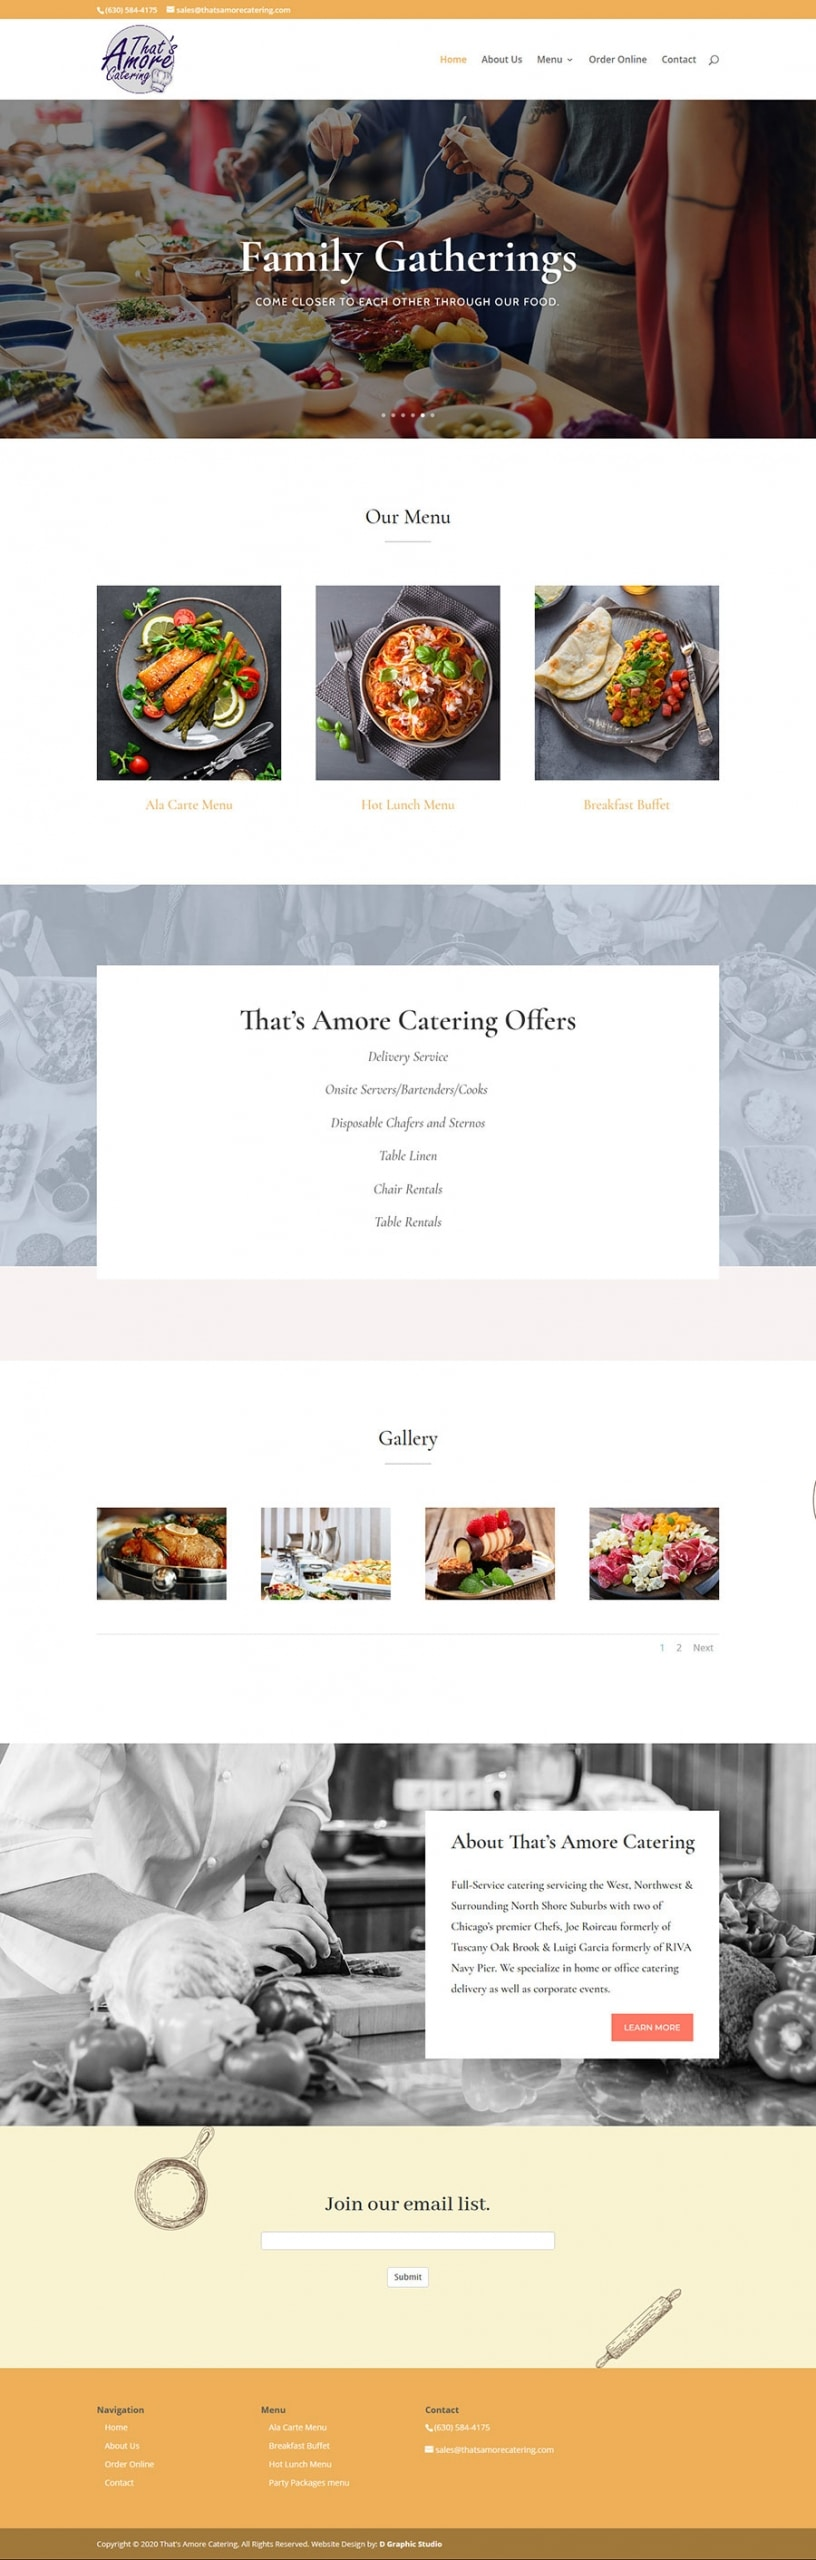 Catering Web Design Services